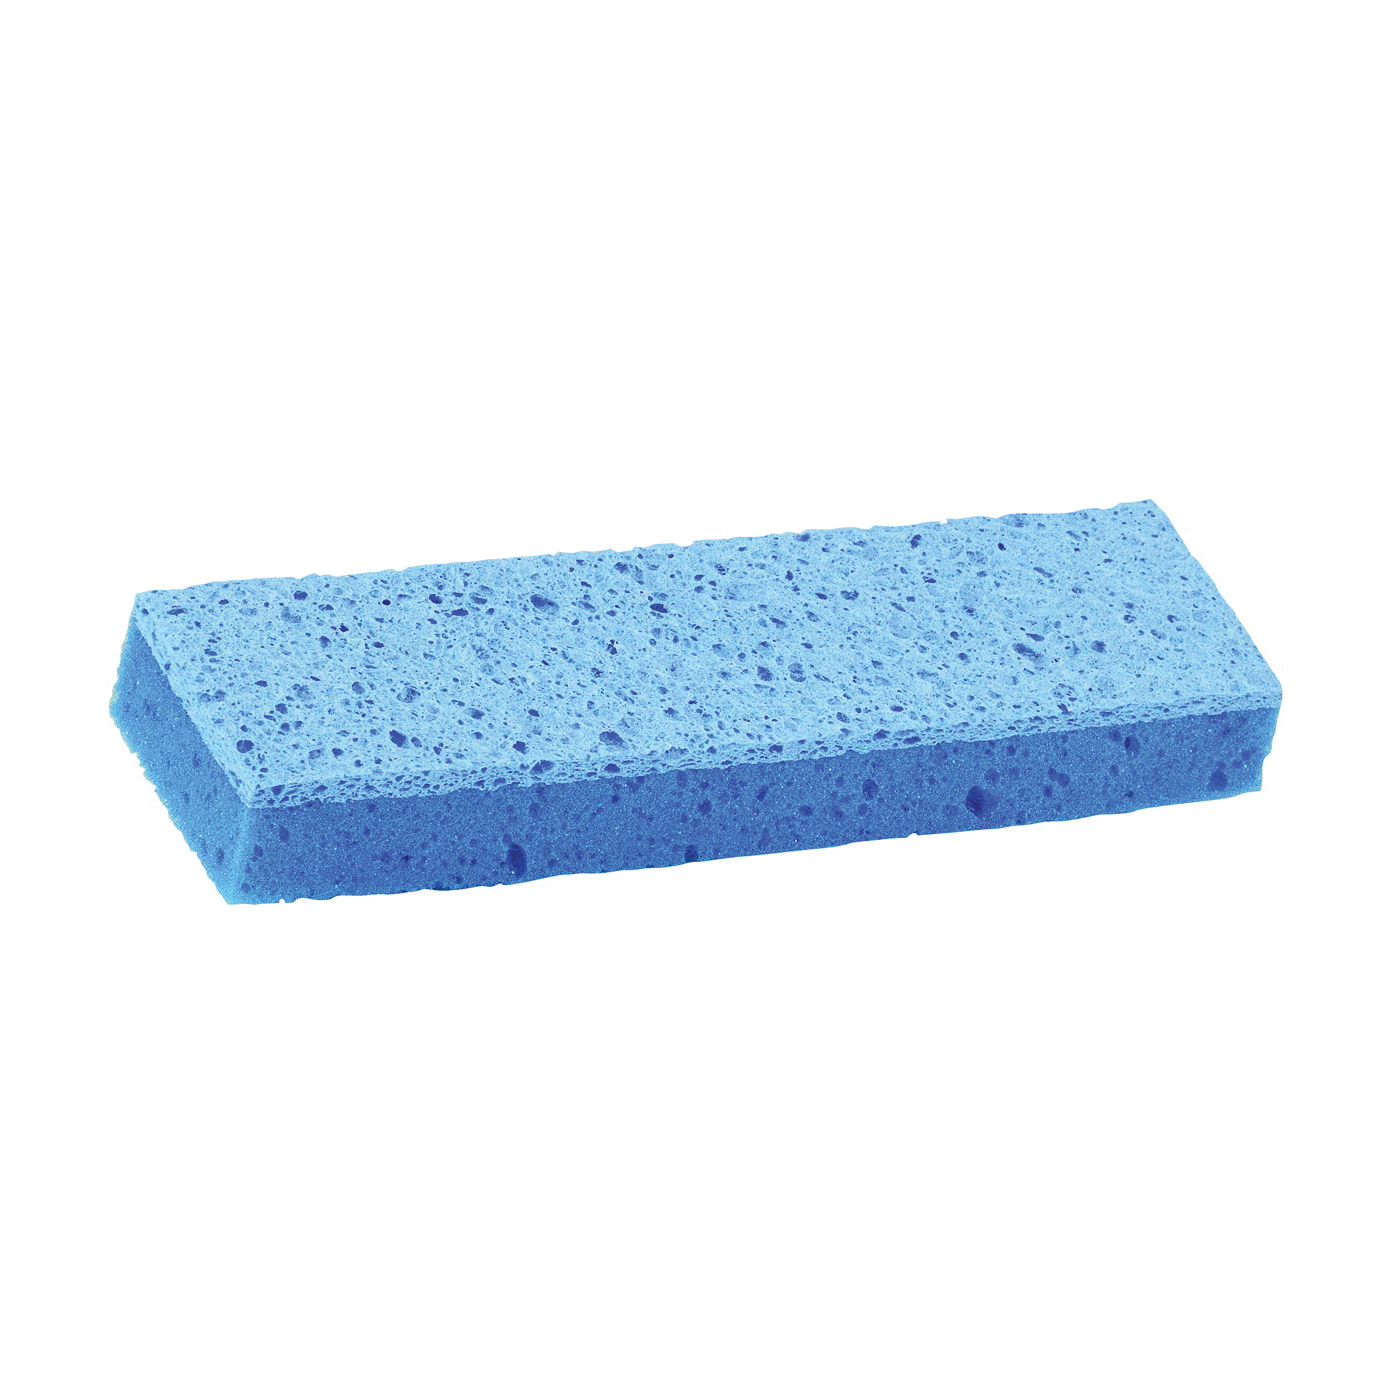 Picture of Quickie 0502 Sponge Mop Head, Cellulene Poly Sponge